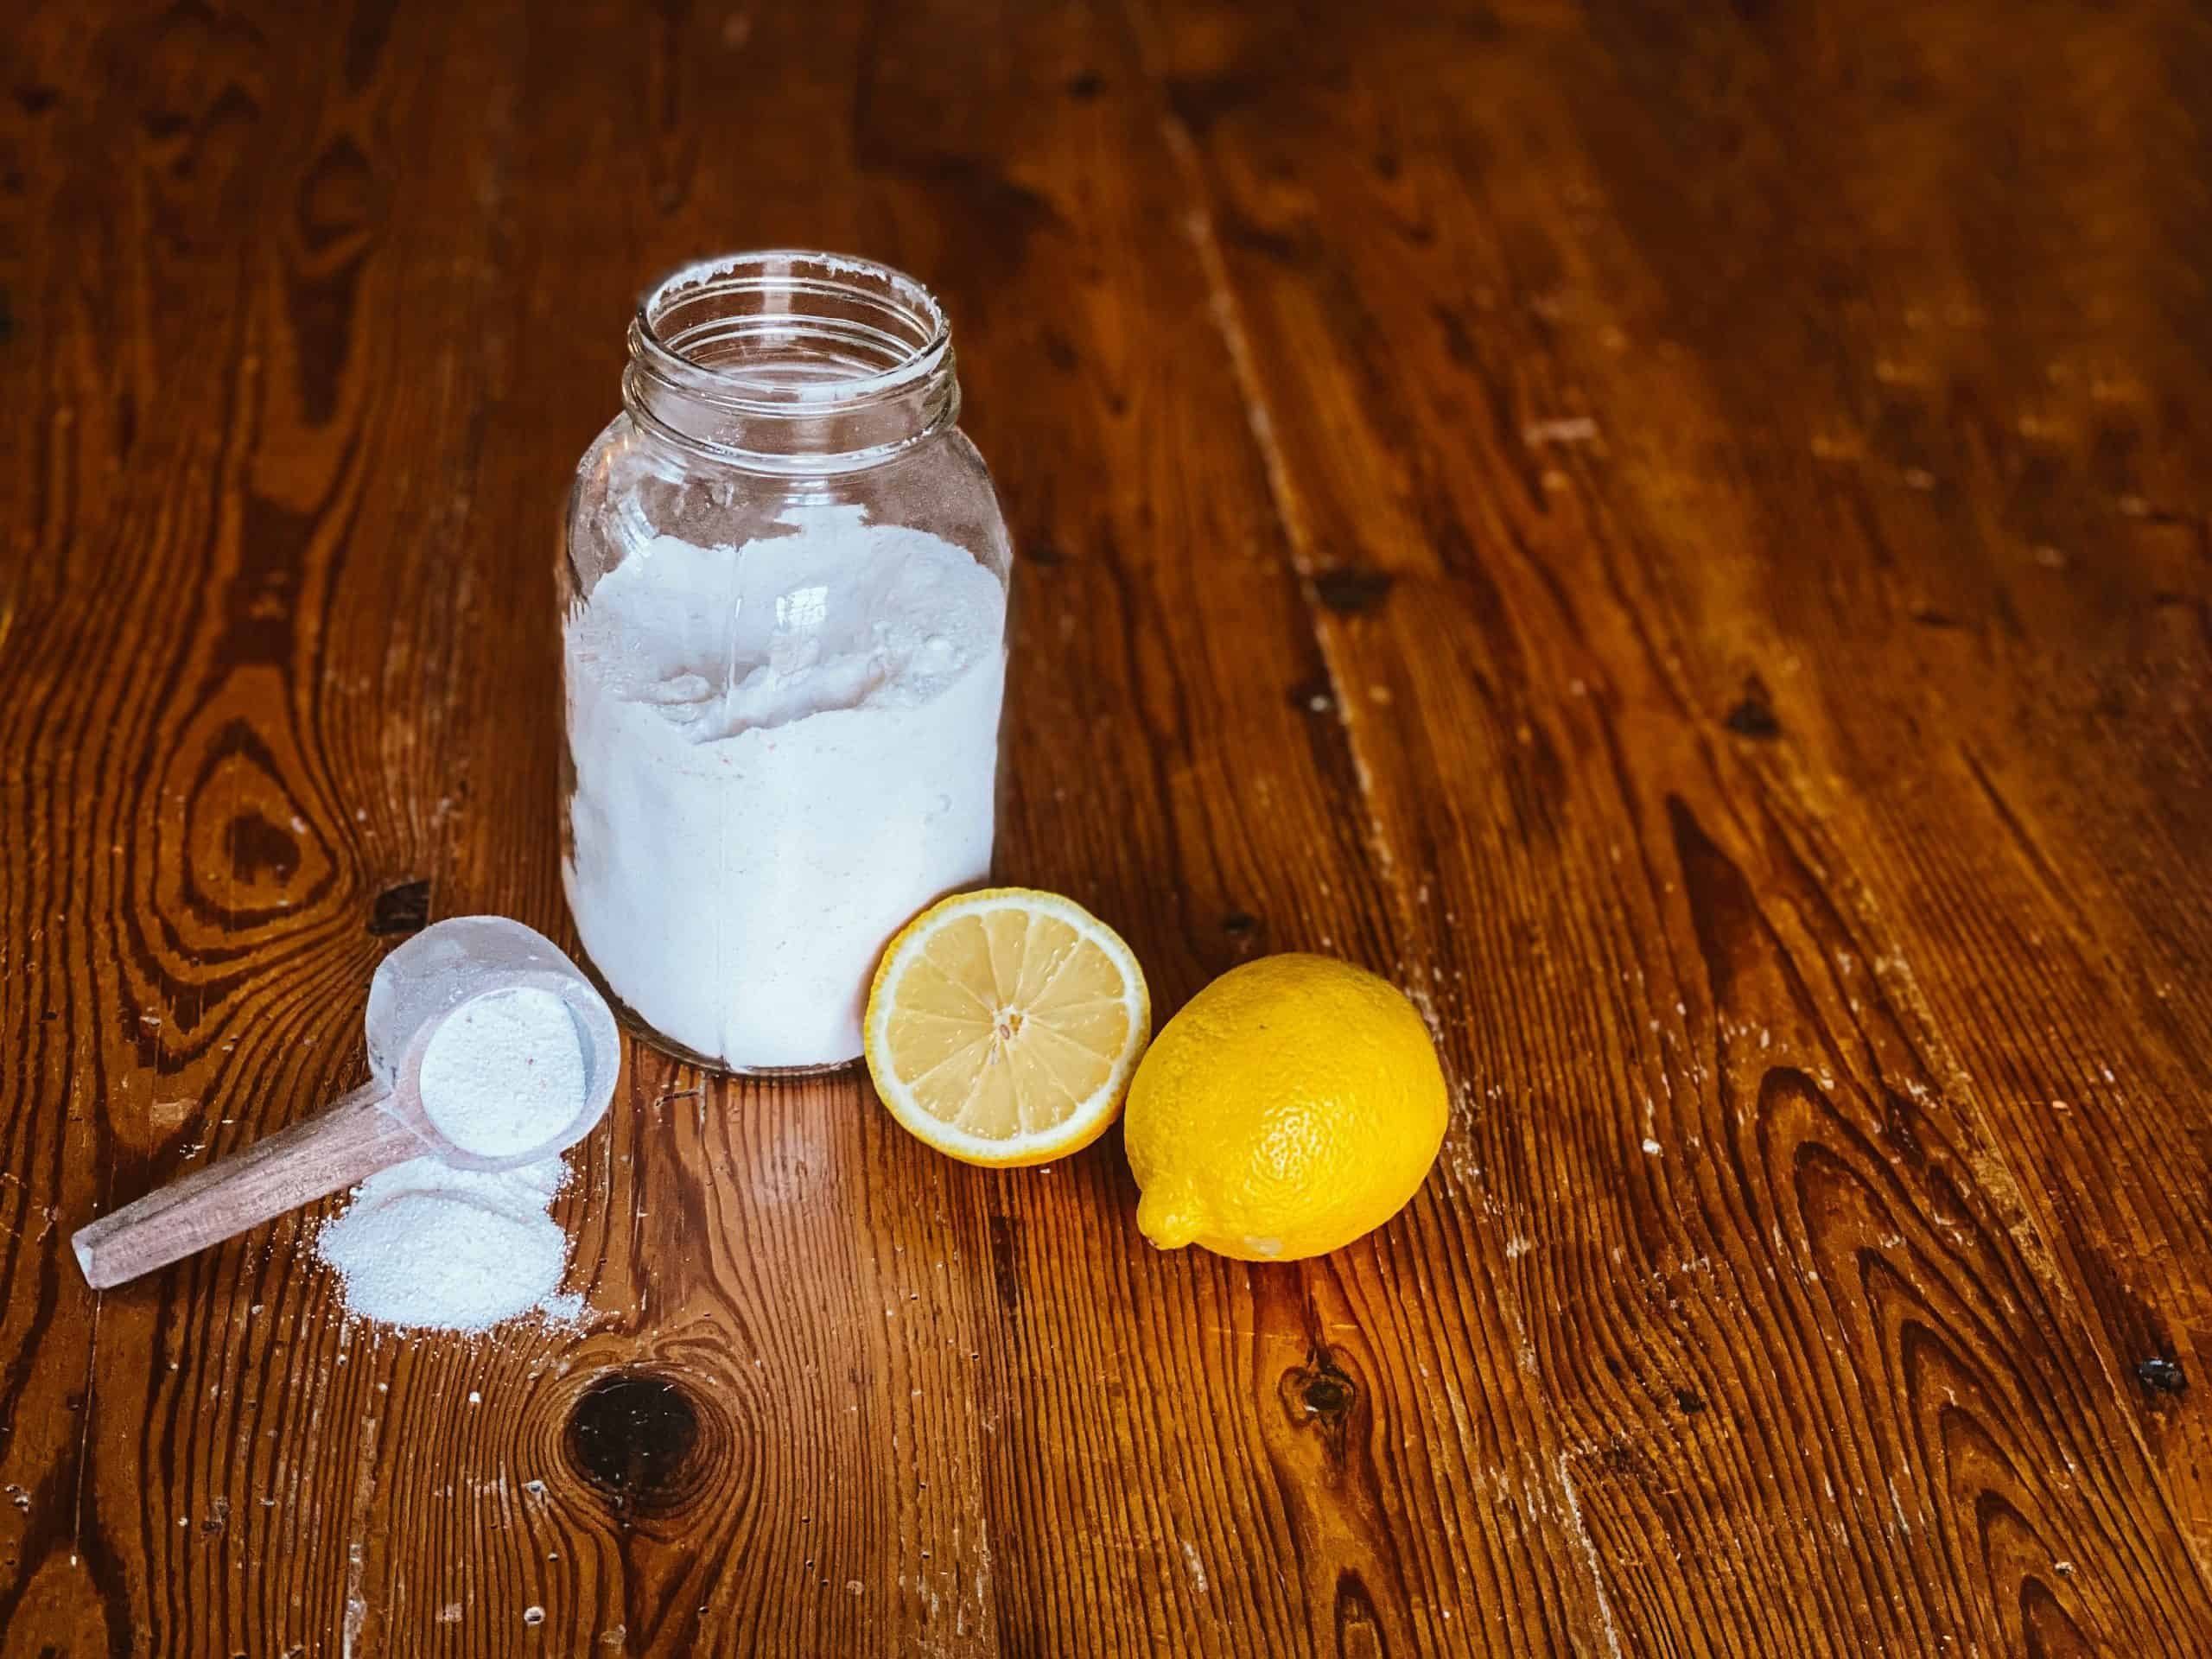 dishwashing detergent powder in mason jar with lemons and wooden scoop